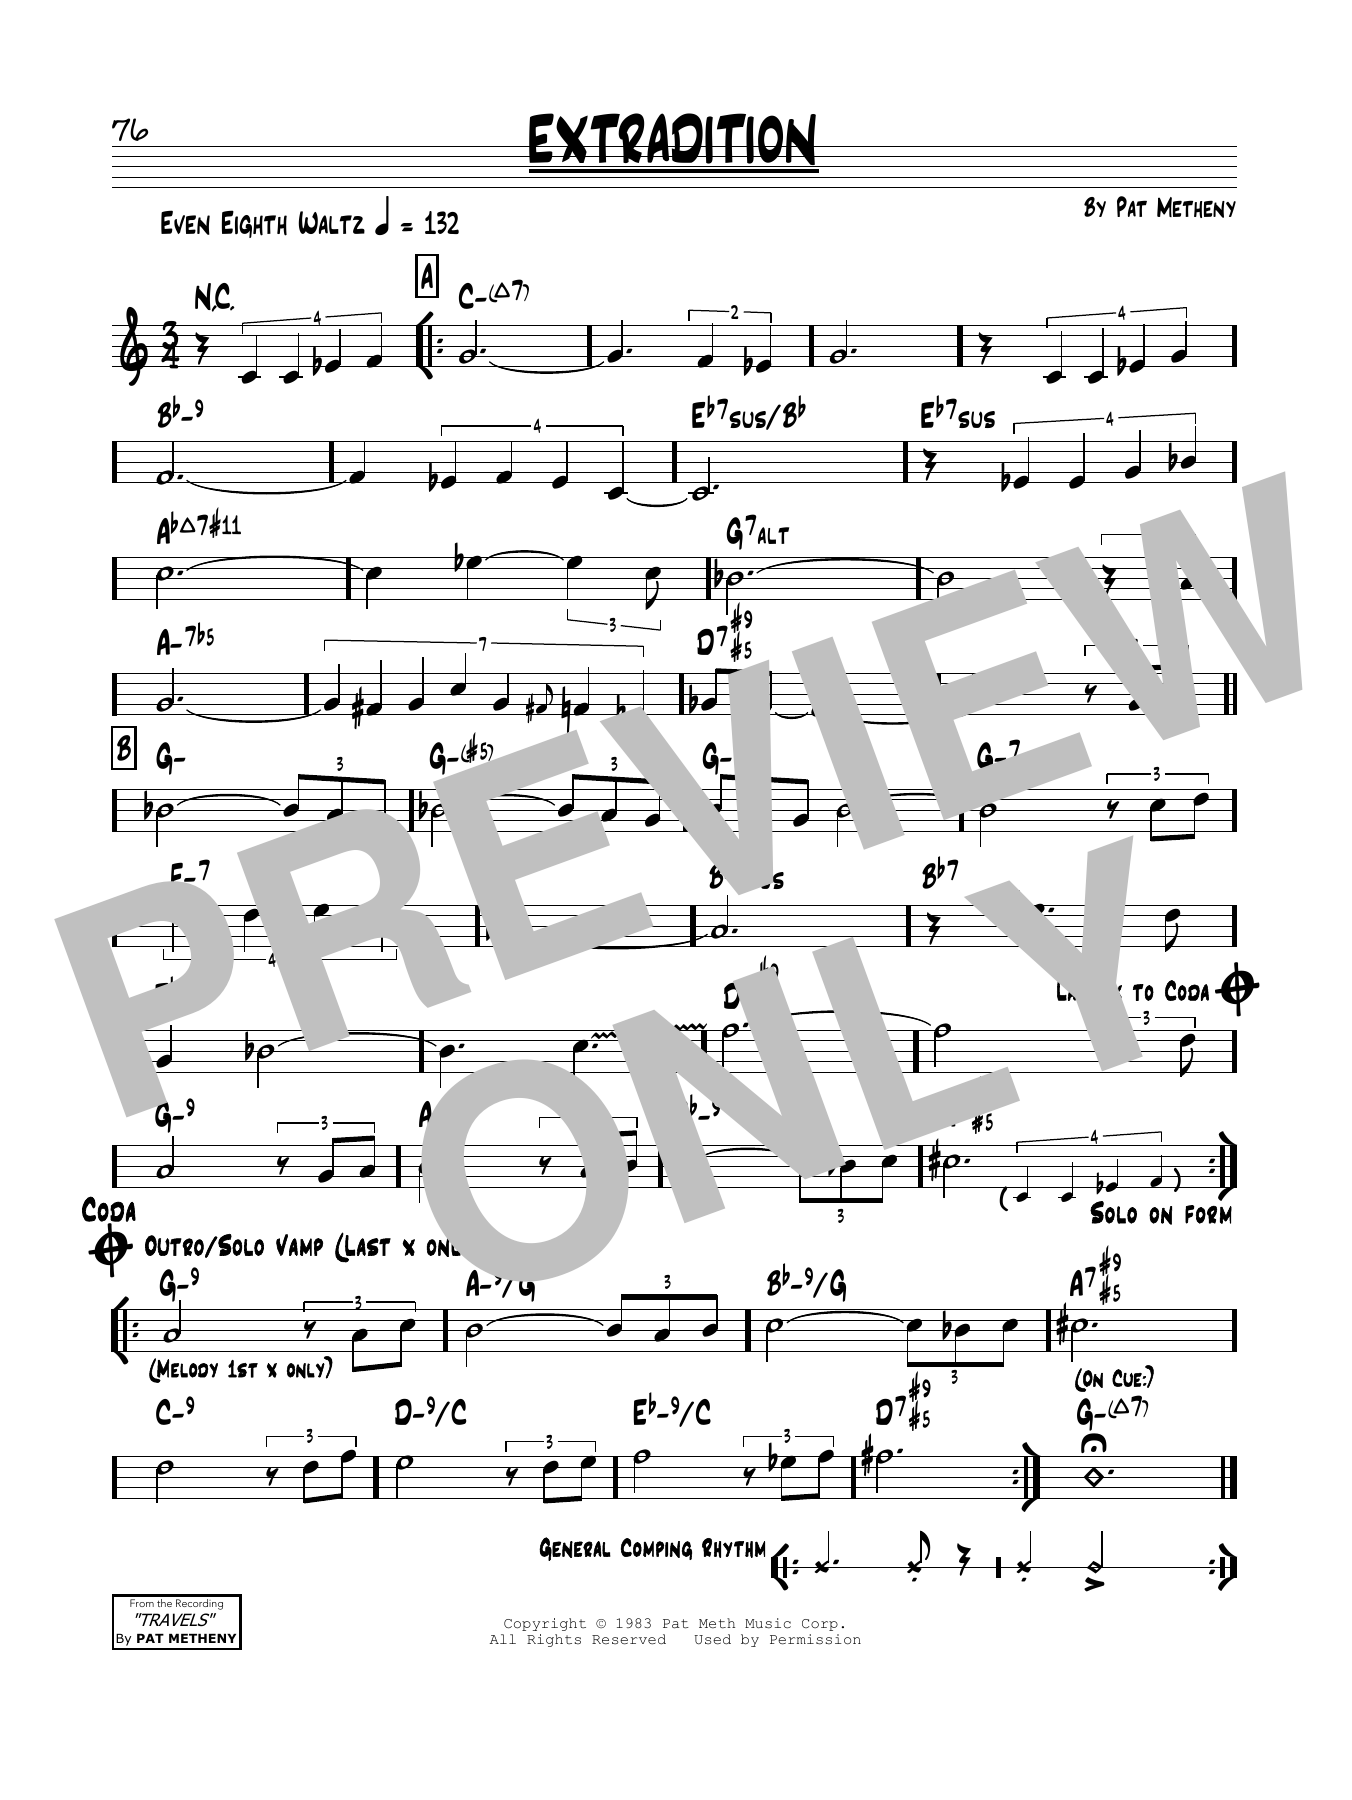 Pat Metheny Extradition sheet music notes and chords. Download Printable PDF.